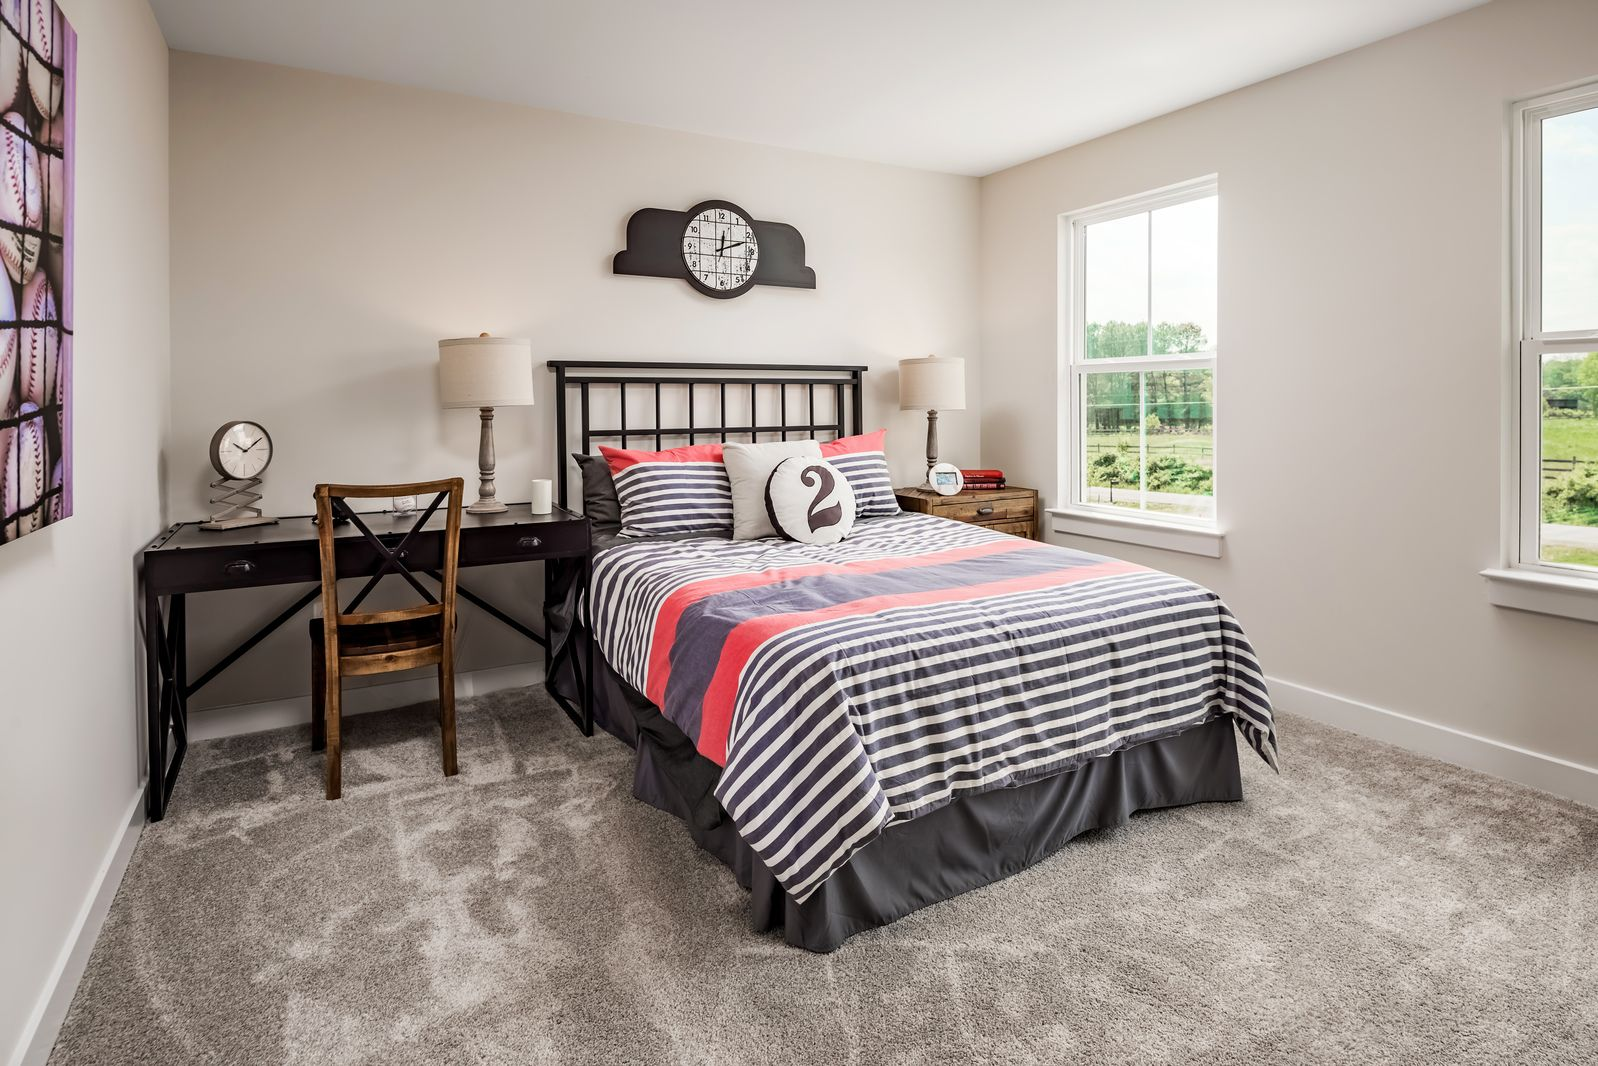 Bedroom featured in the York By Ryan Homes in Nashville, TN